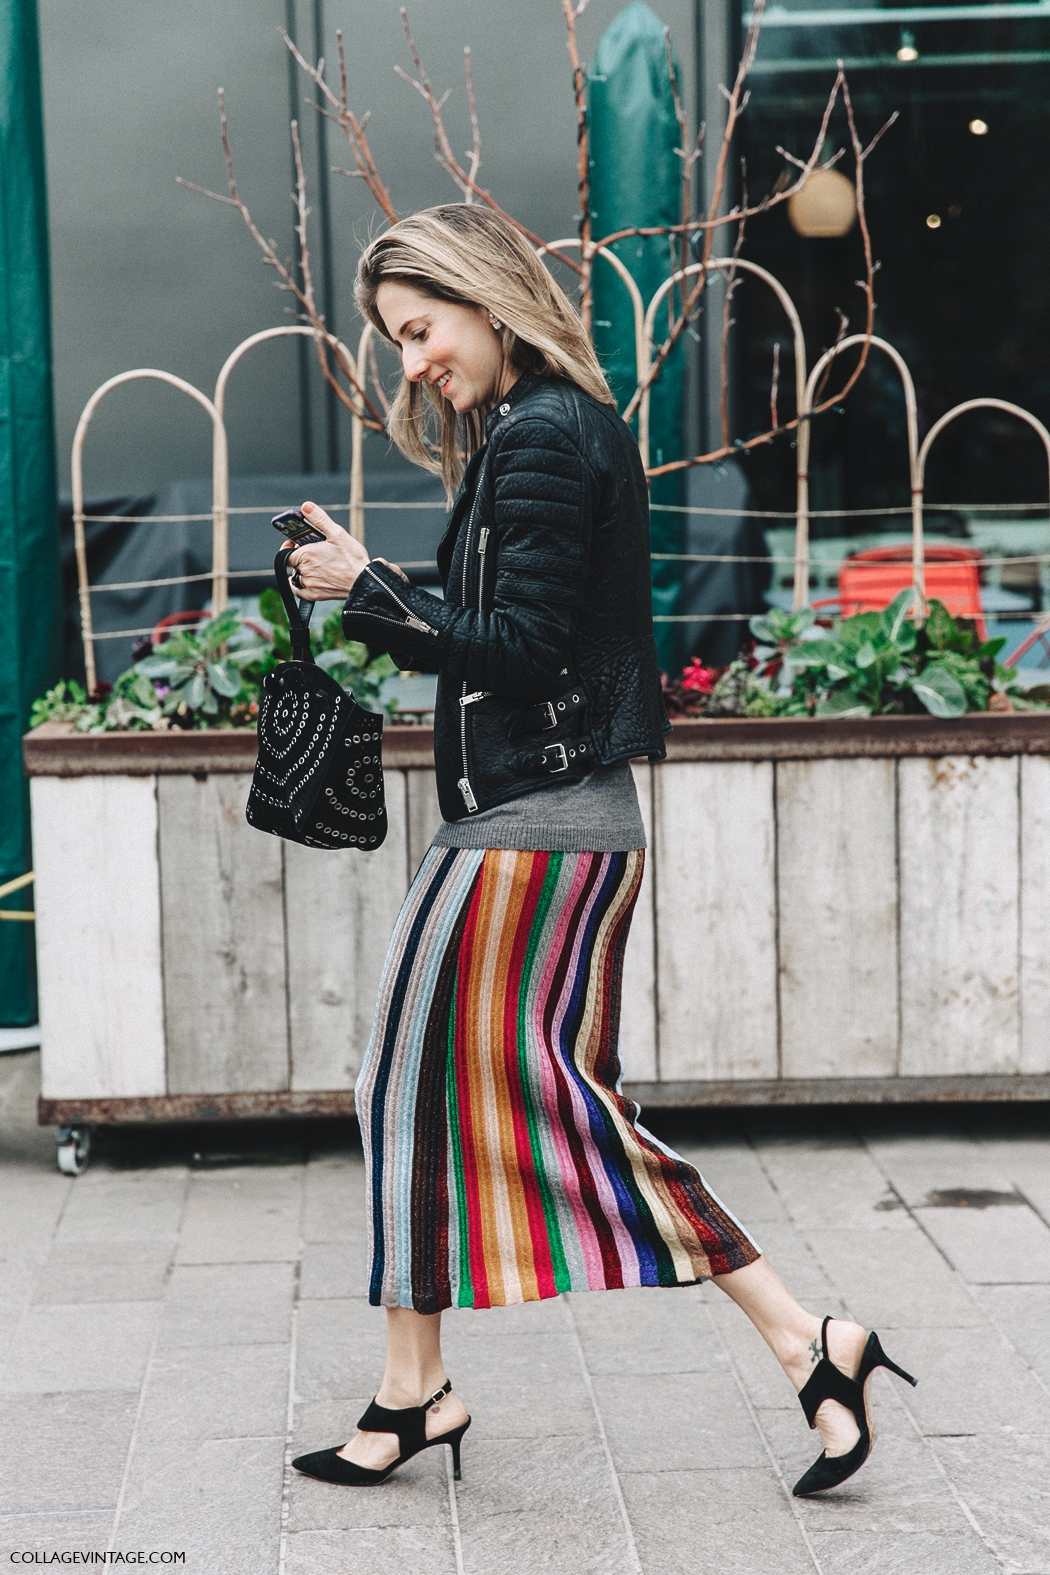 LFW-London_Fashion_Week_Fall_16-Street_Style-Collage_Vintage-Marina_Larroude-Stripped_Skirt-